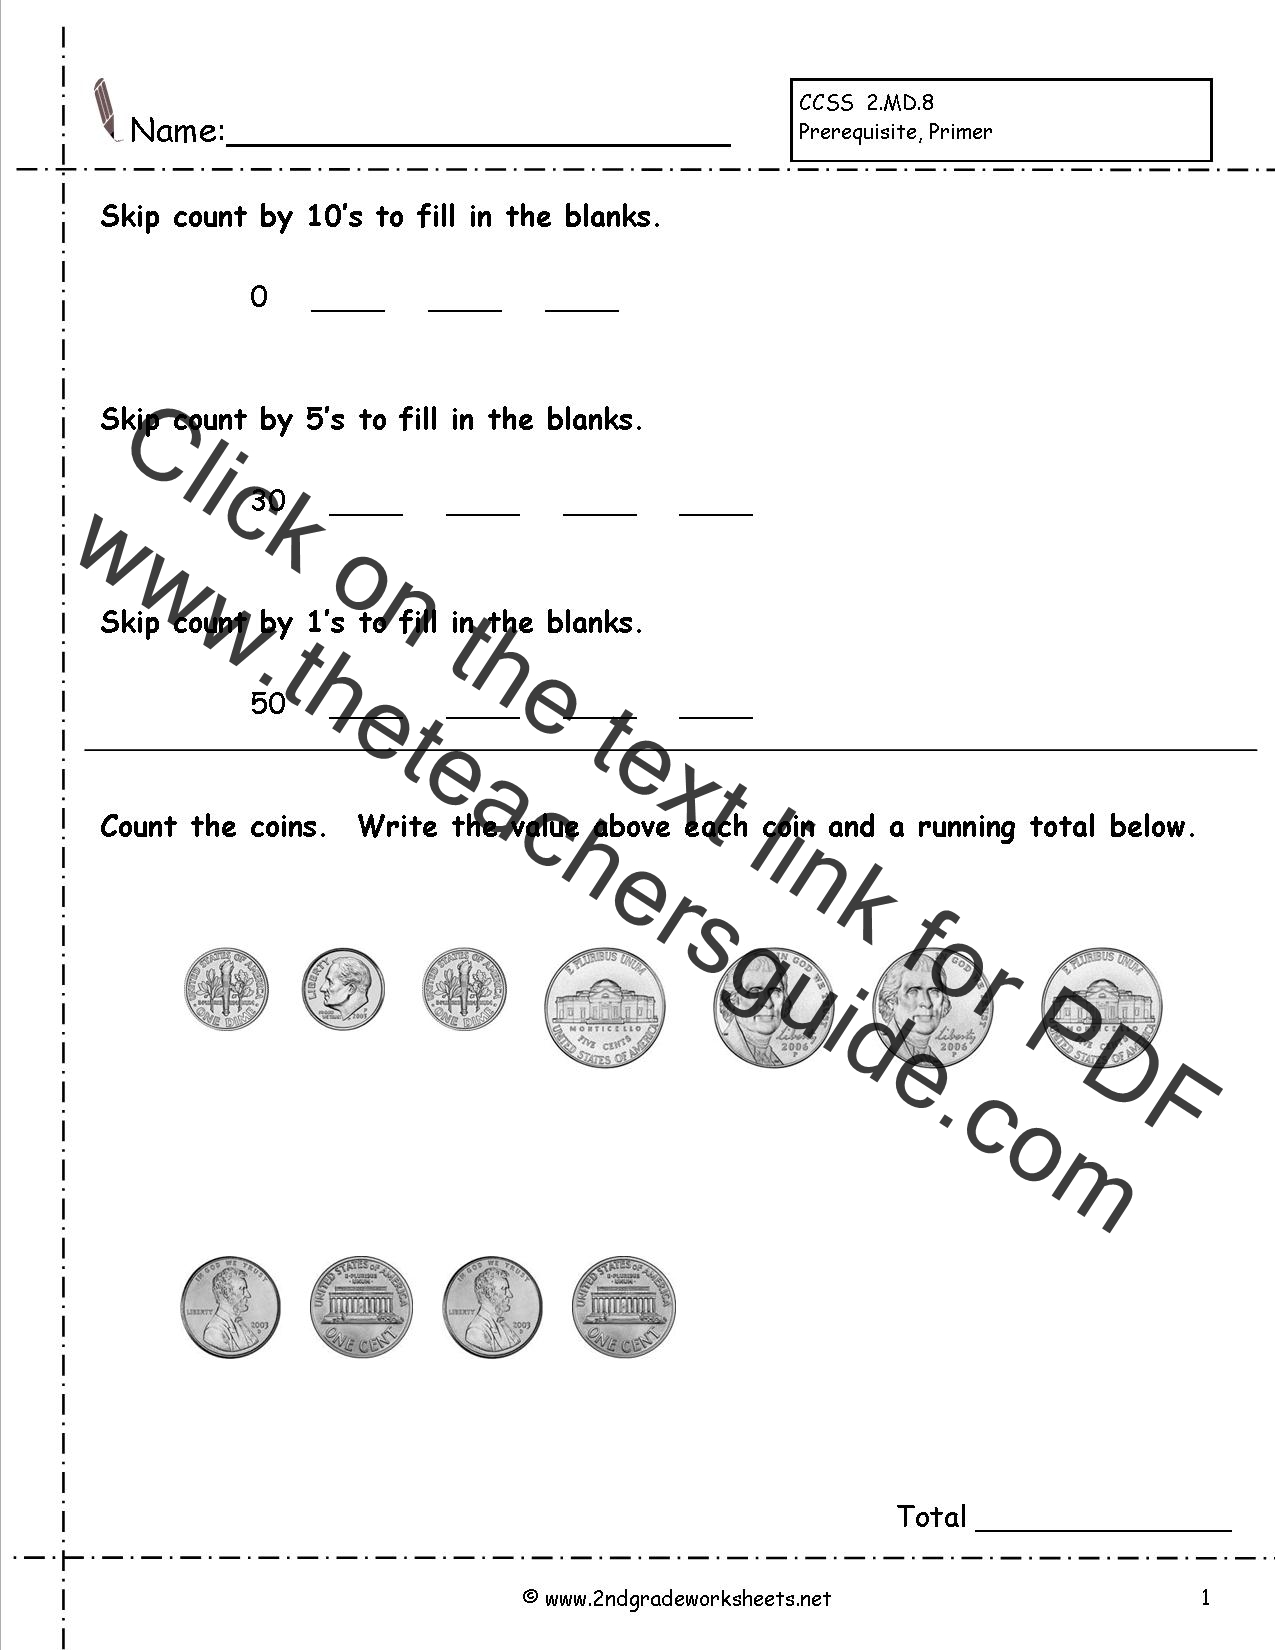 Printables Count Money Worksheet counting coins and money worksheets printouts skip practice worksheet